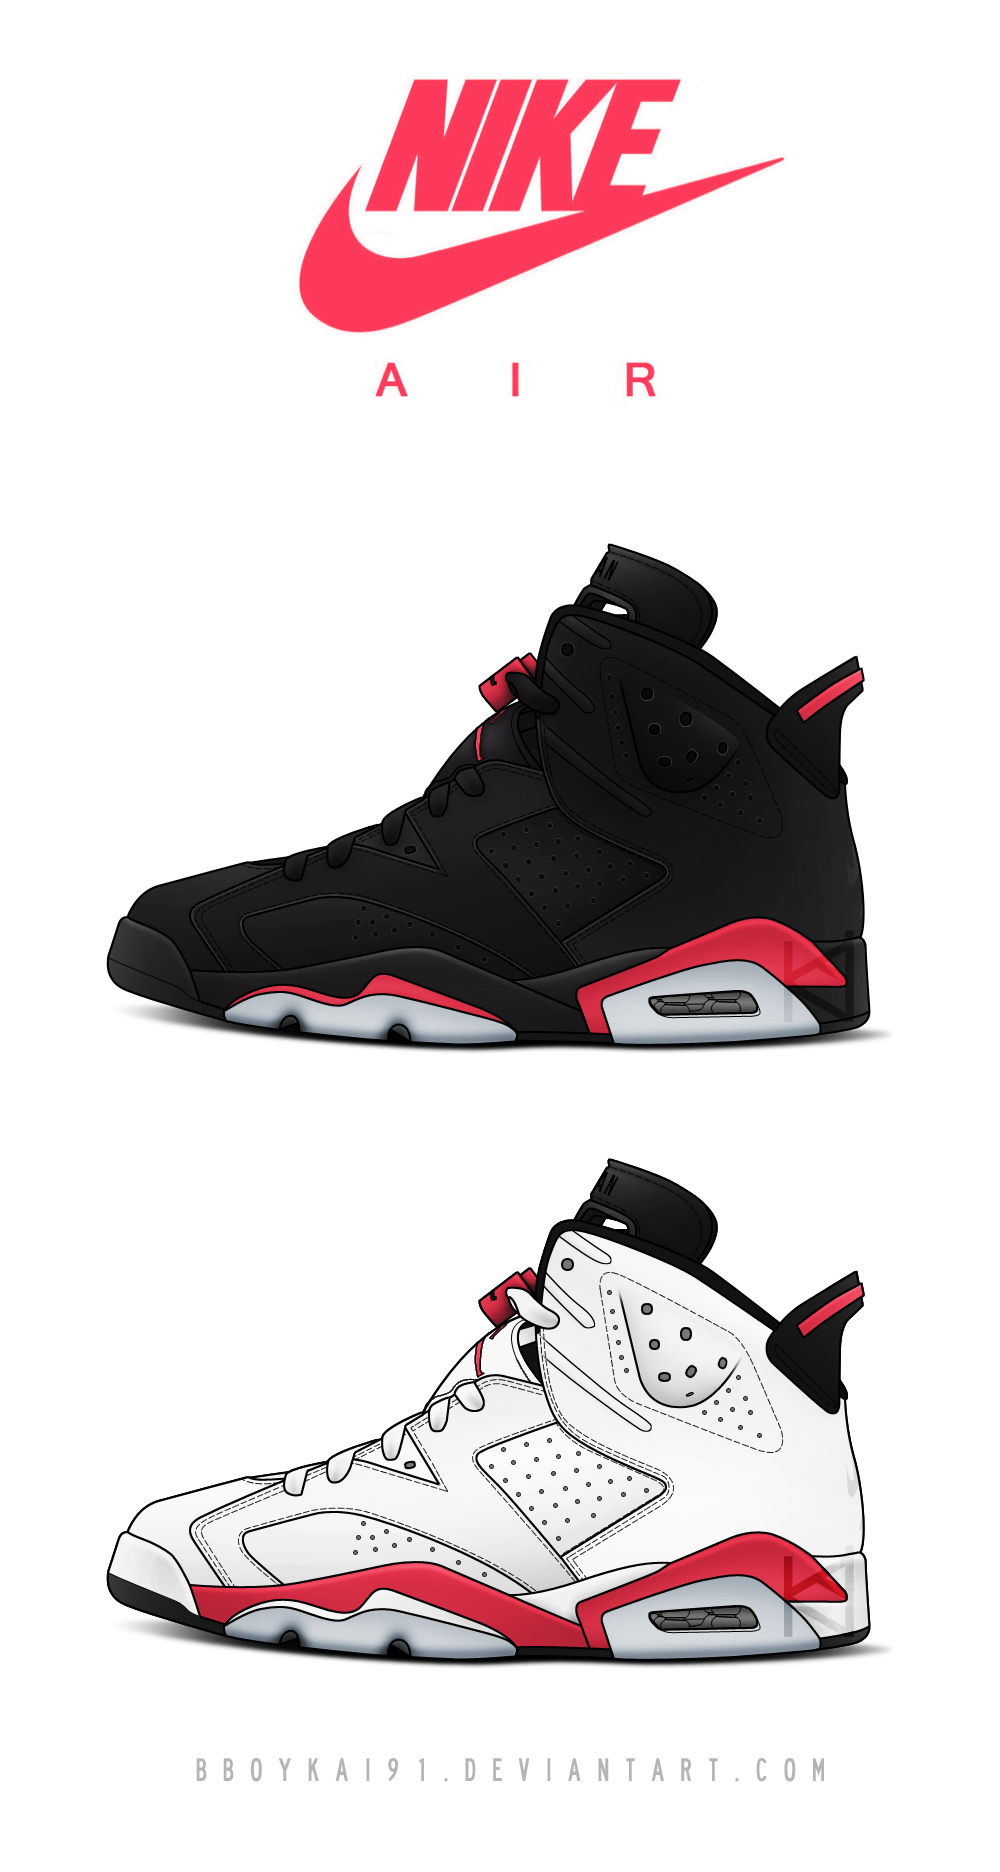 Air Jordan 6 OG 'Infrared' by BBoyKai91 on DeviantArt